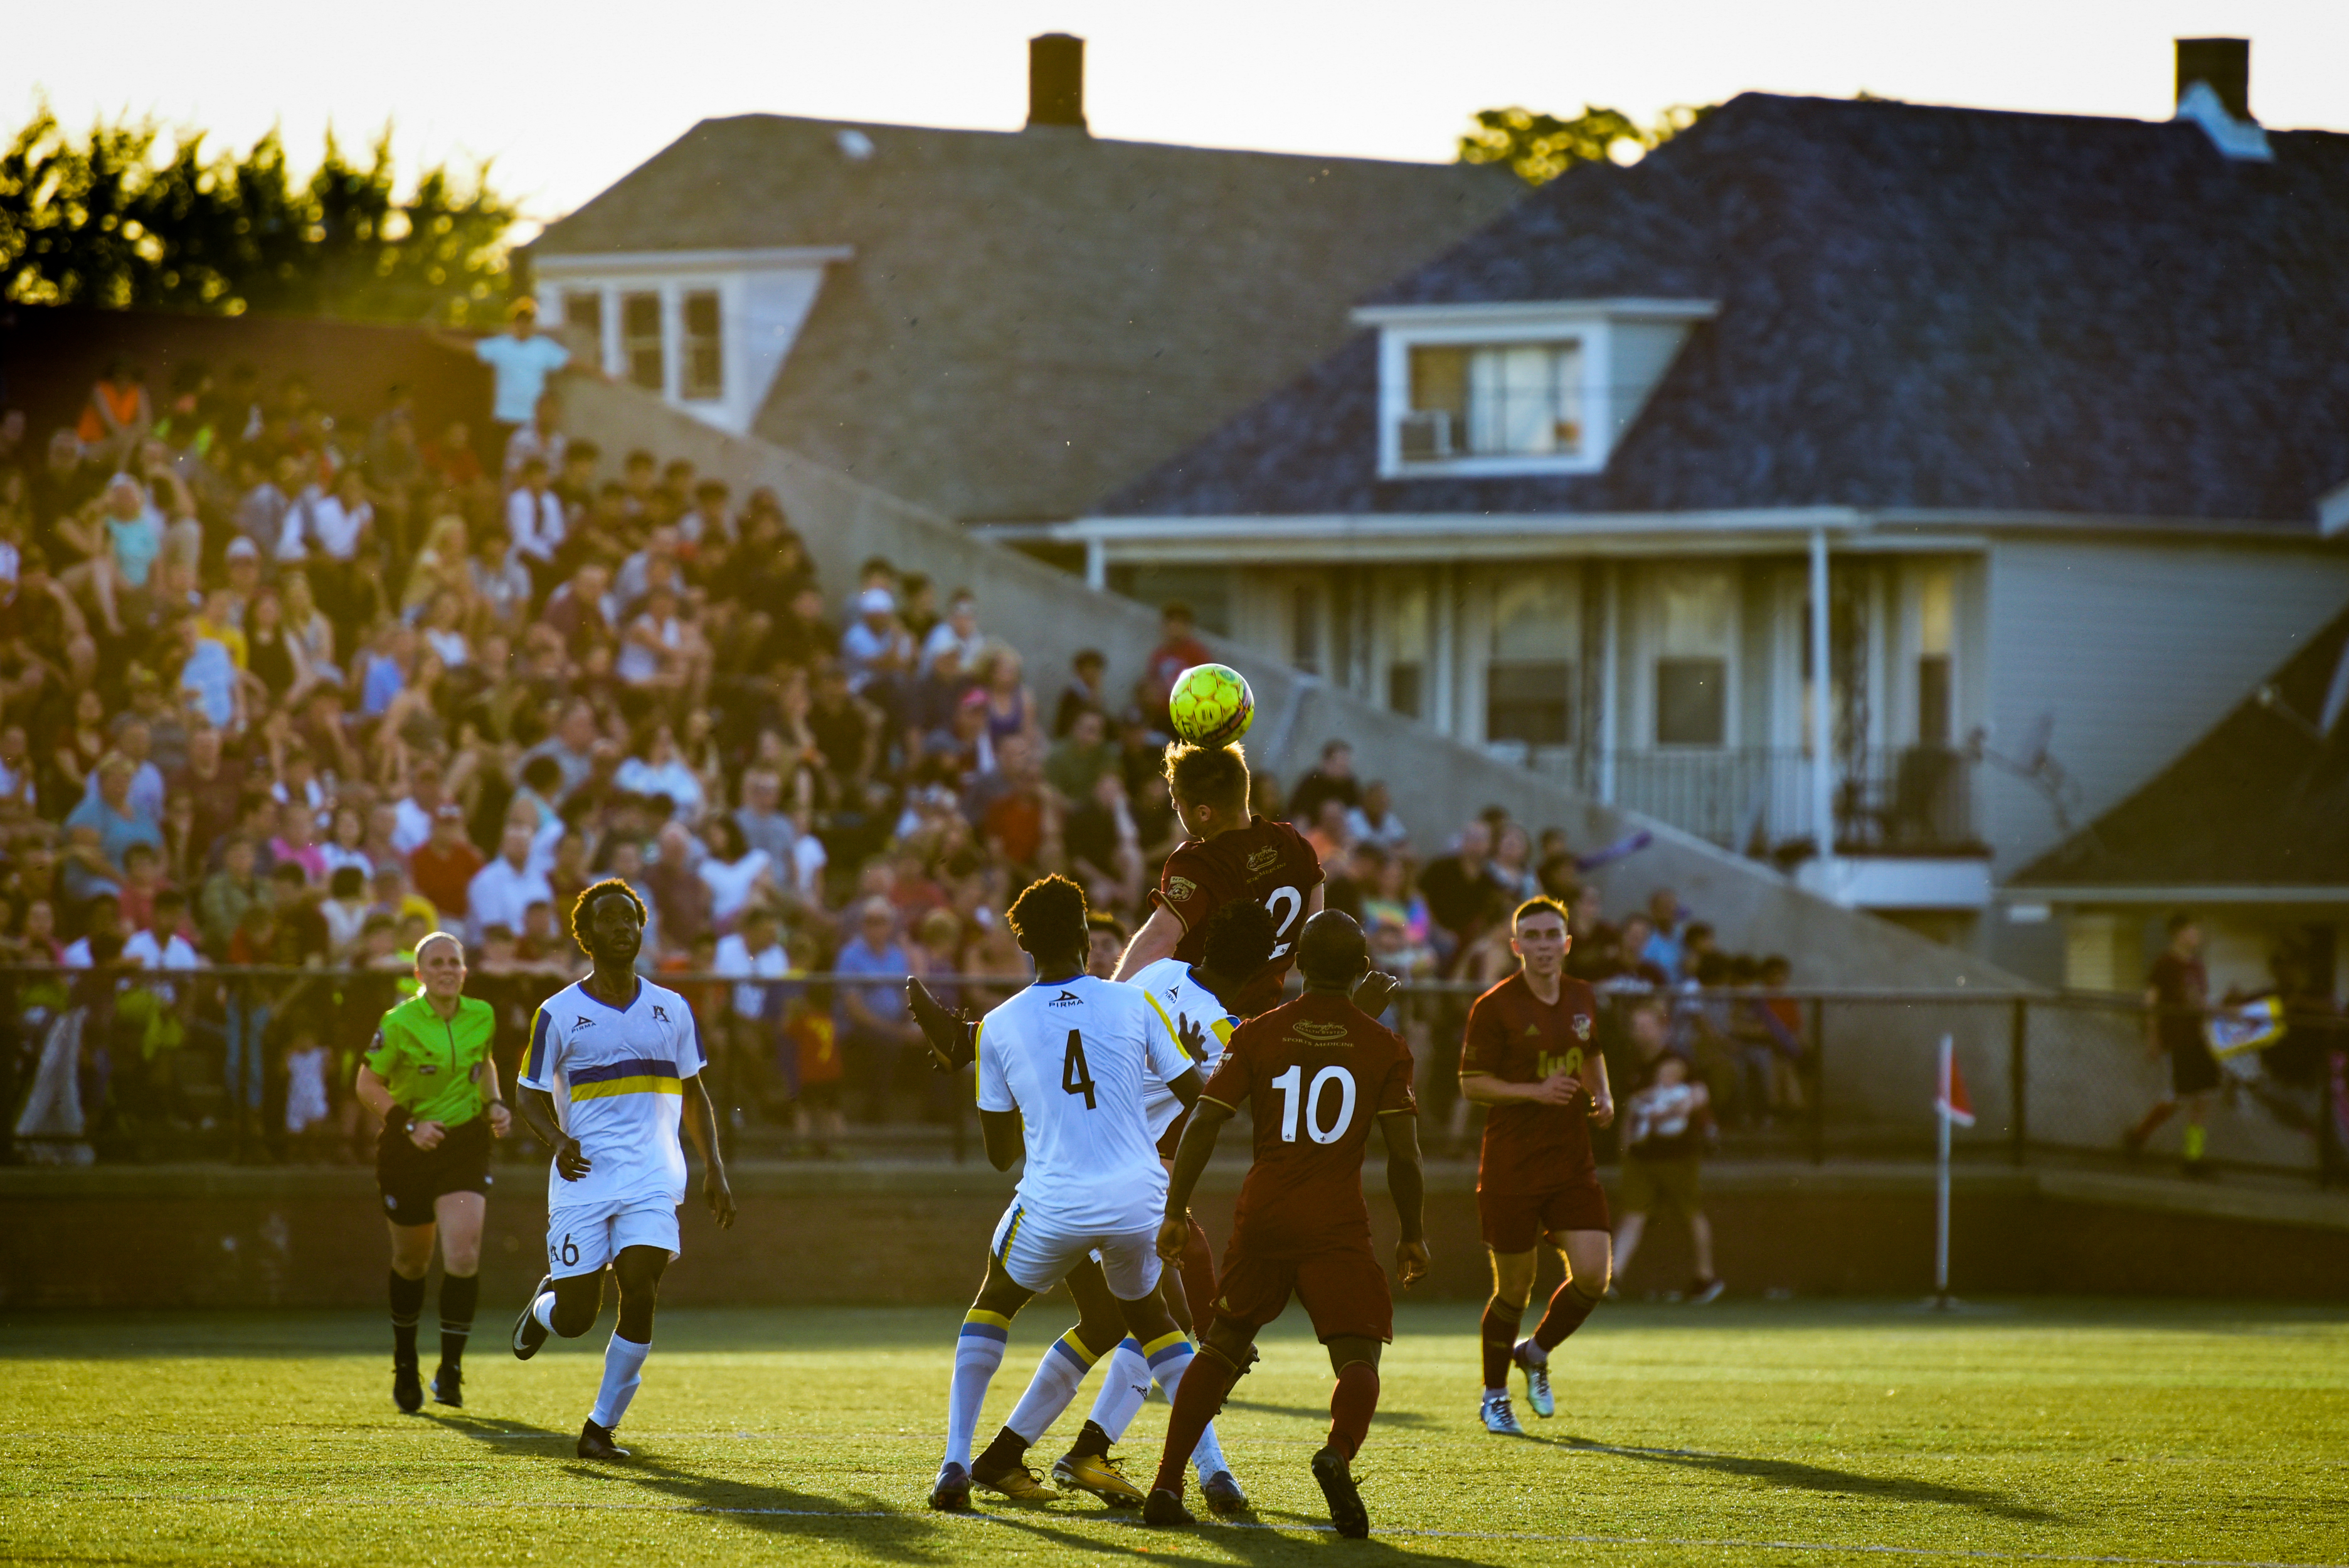 A soccoer player strikes a header in a crowded group